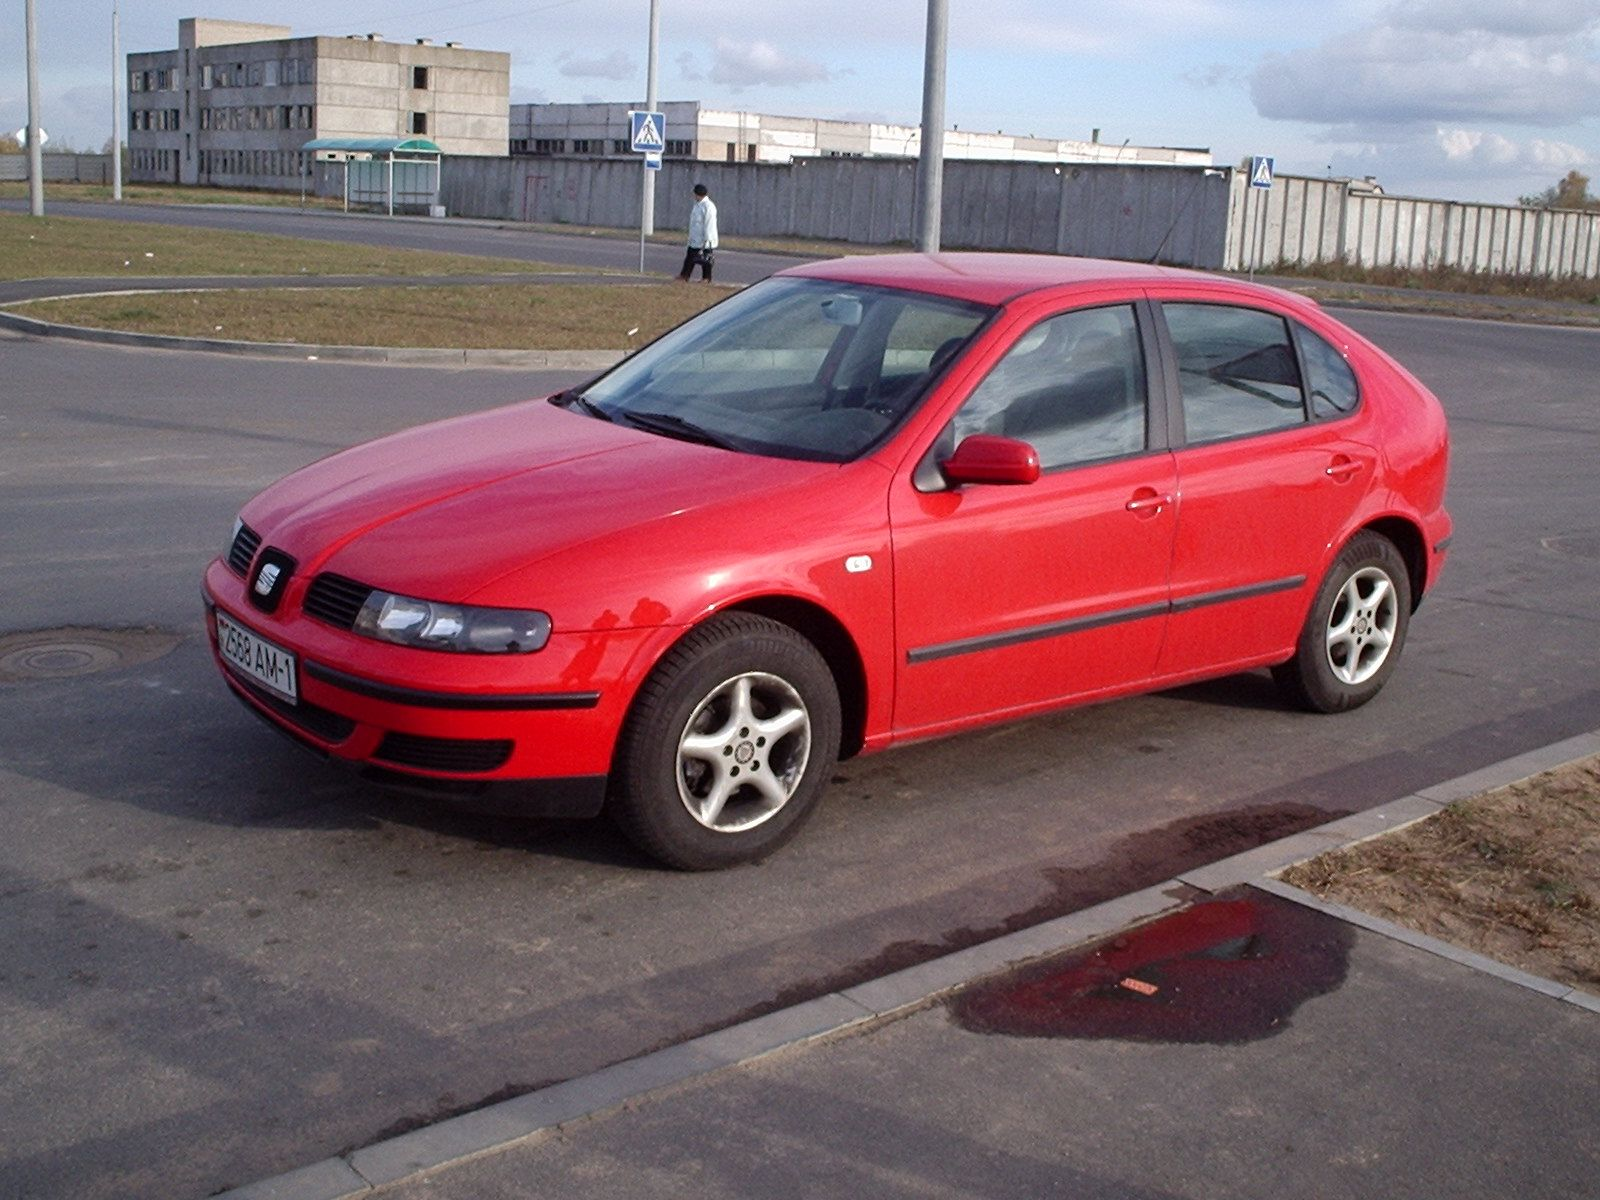 2000 Seat Leon Pictures 1390cc Gasoline Ff Manual For